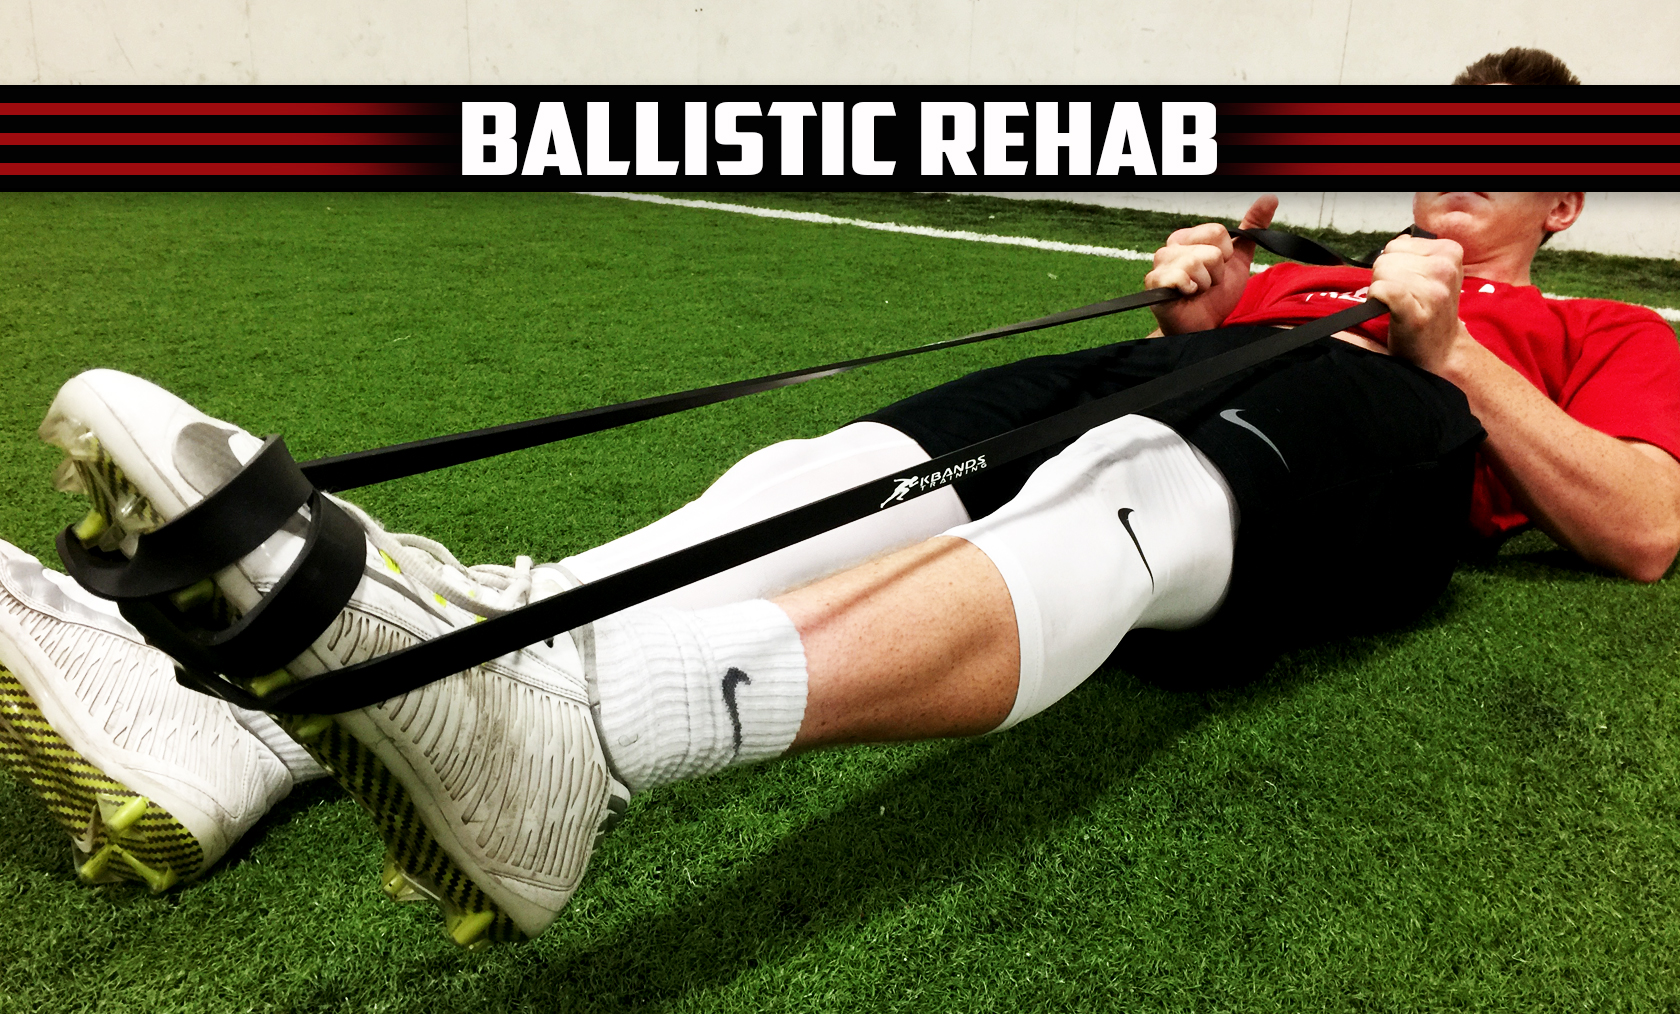 Ballistic Rehab Digital Trainer